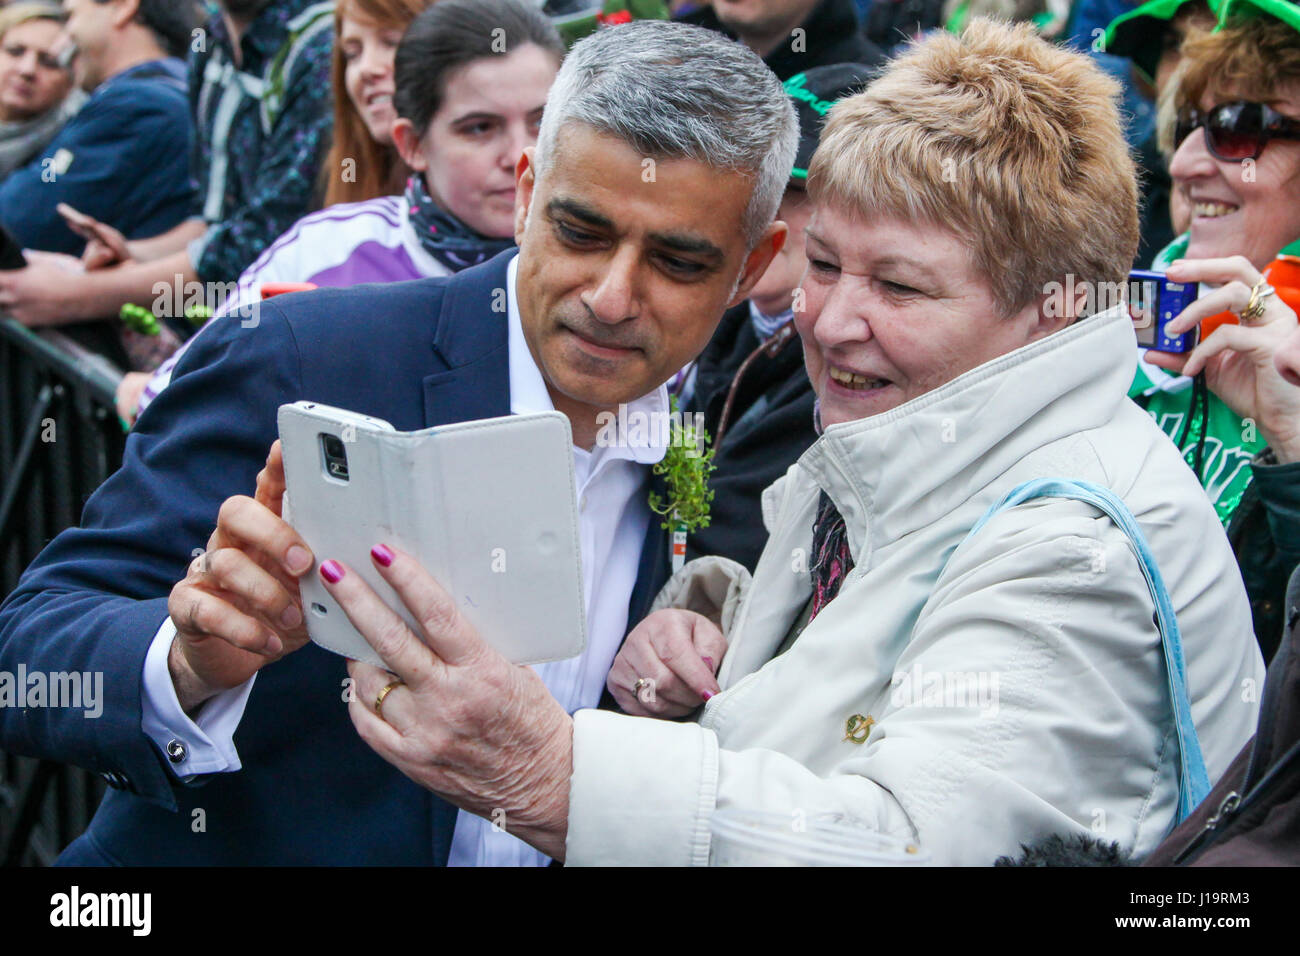 Hundreds of people attend St Patrick's Day celebrations in Trafalgar Square.  Featuring: Mayor of London, Sadiq - Stock Image